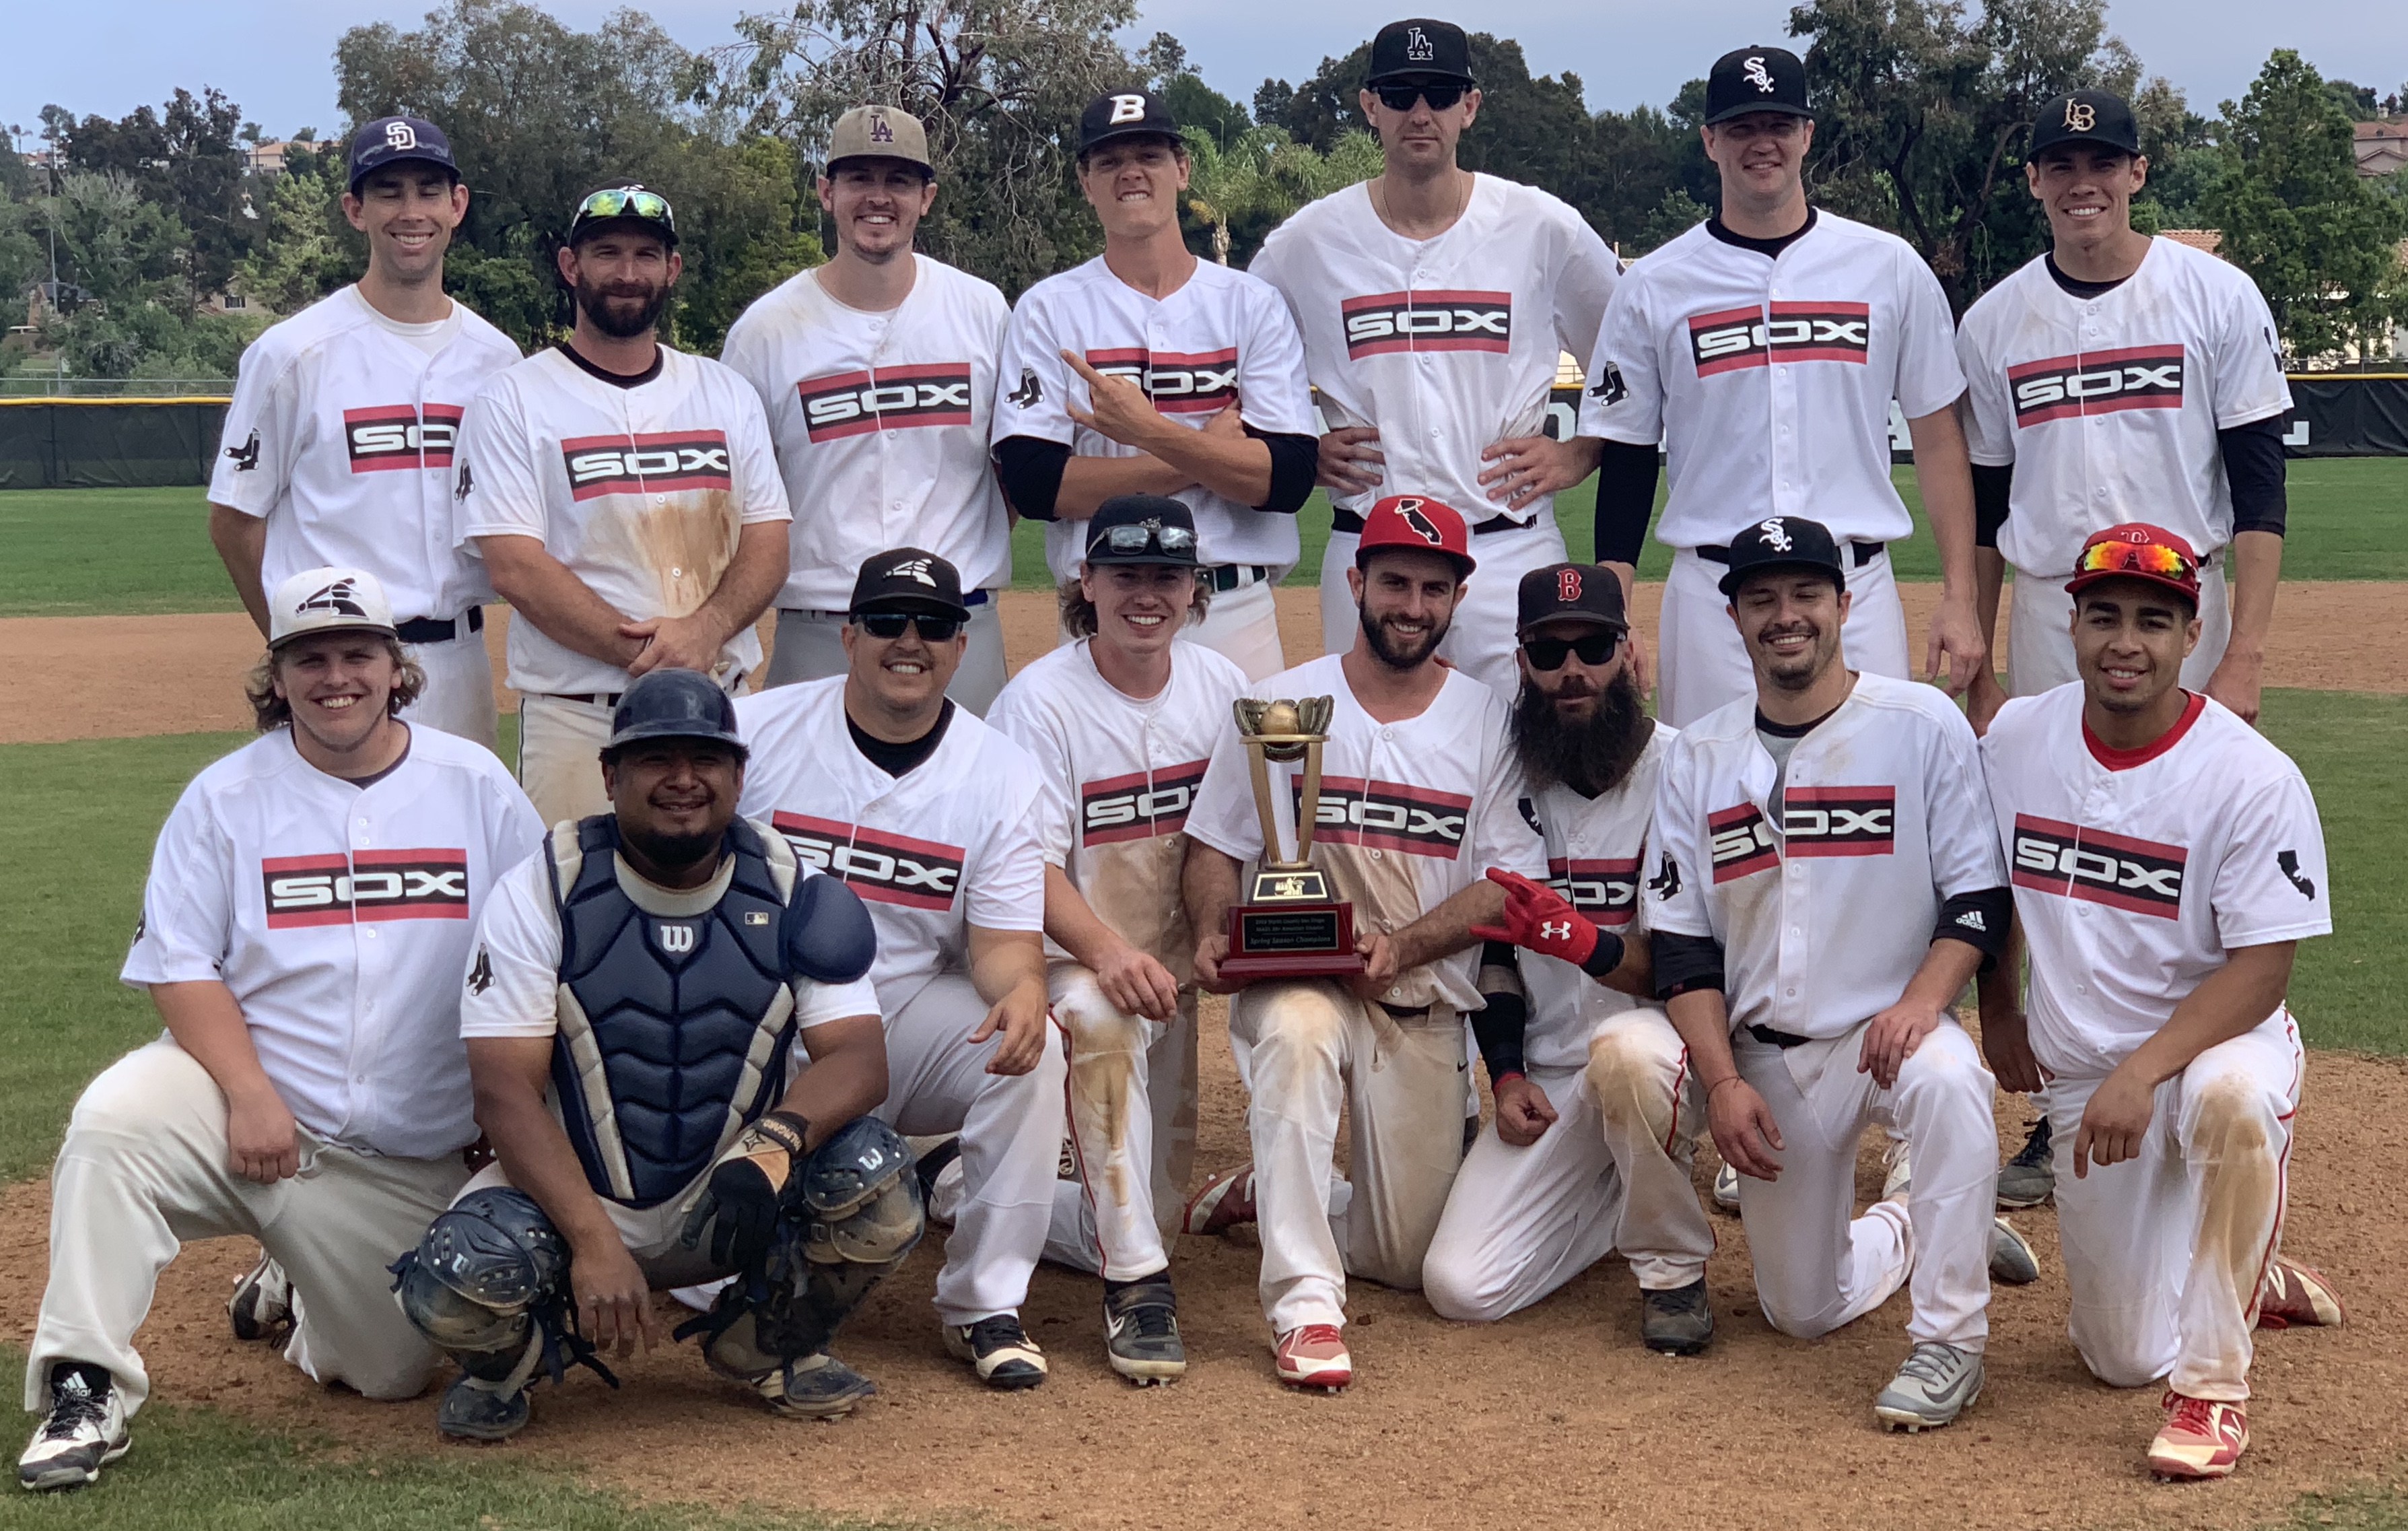 Congratulations to the 18+ Black Sox, 2019 Spring MABL American Division Champions